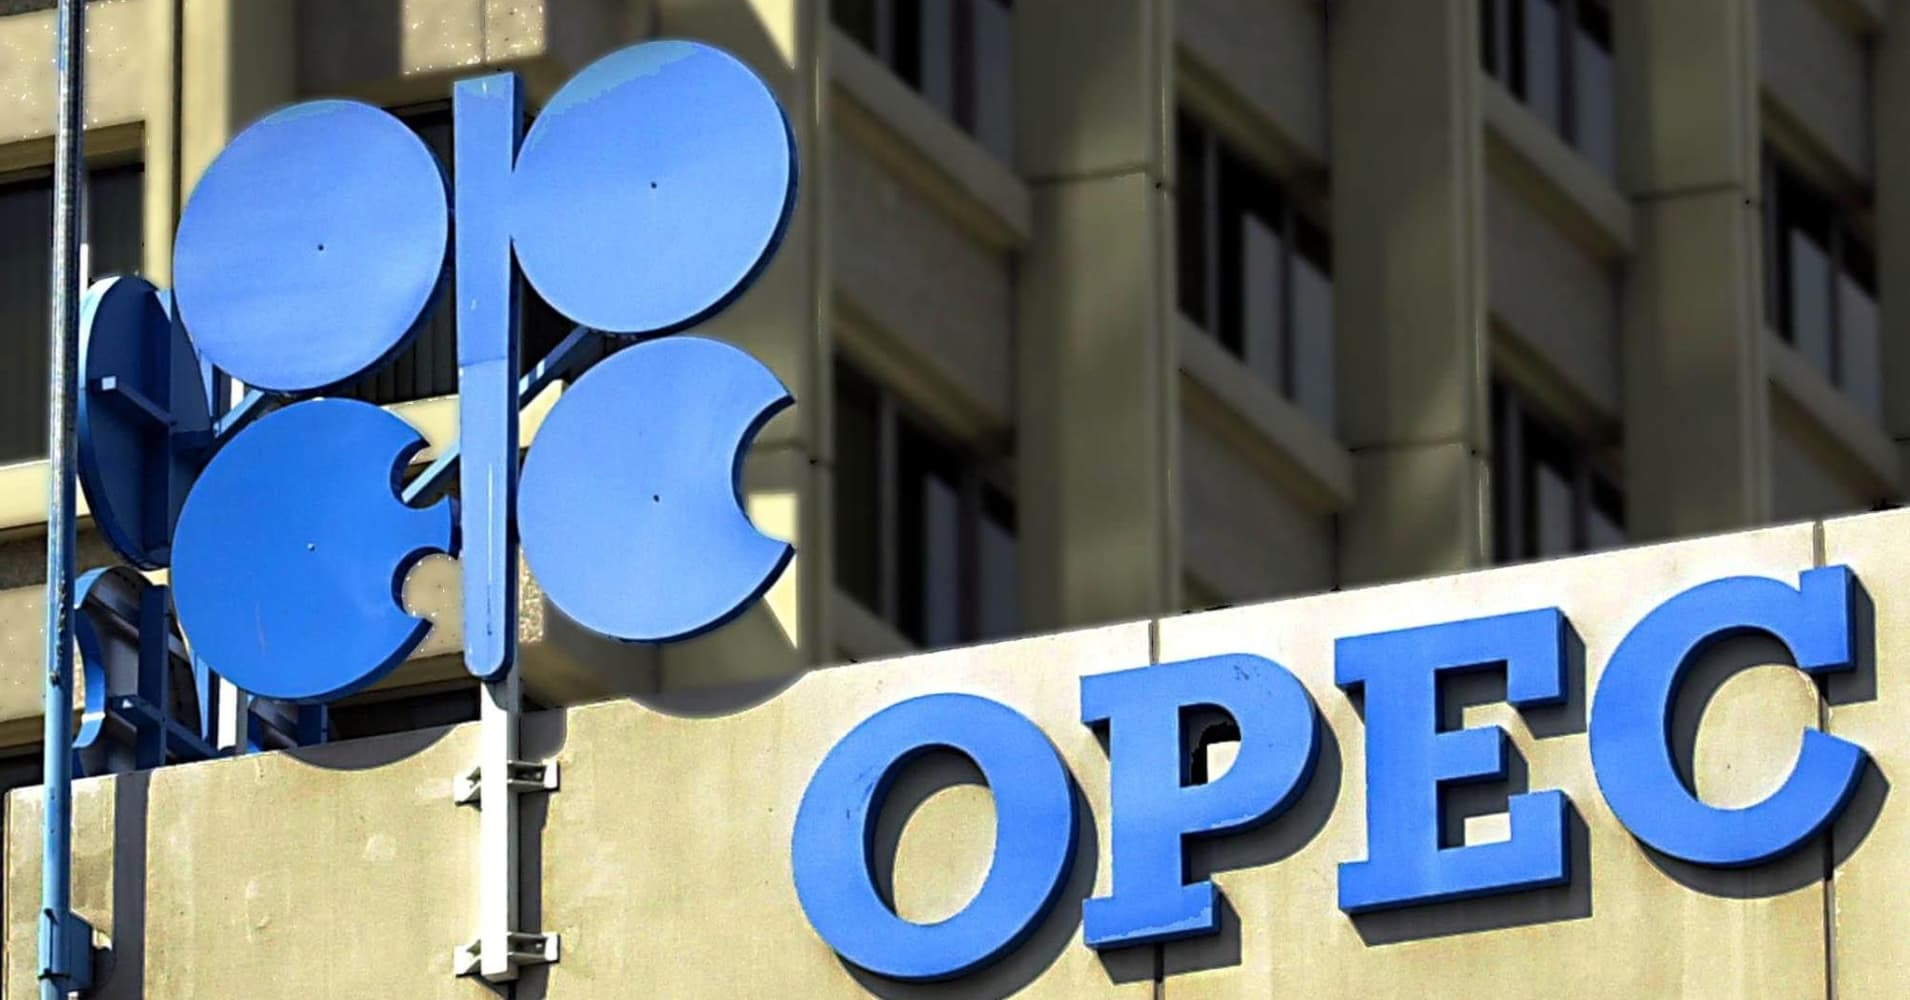 The OPEC (Organization of Petroleum Exporting Countries) logo